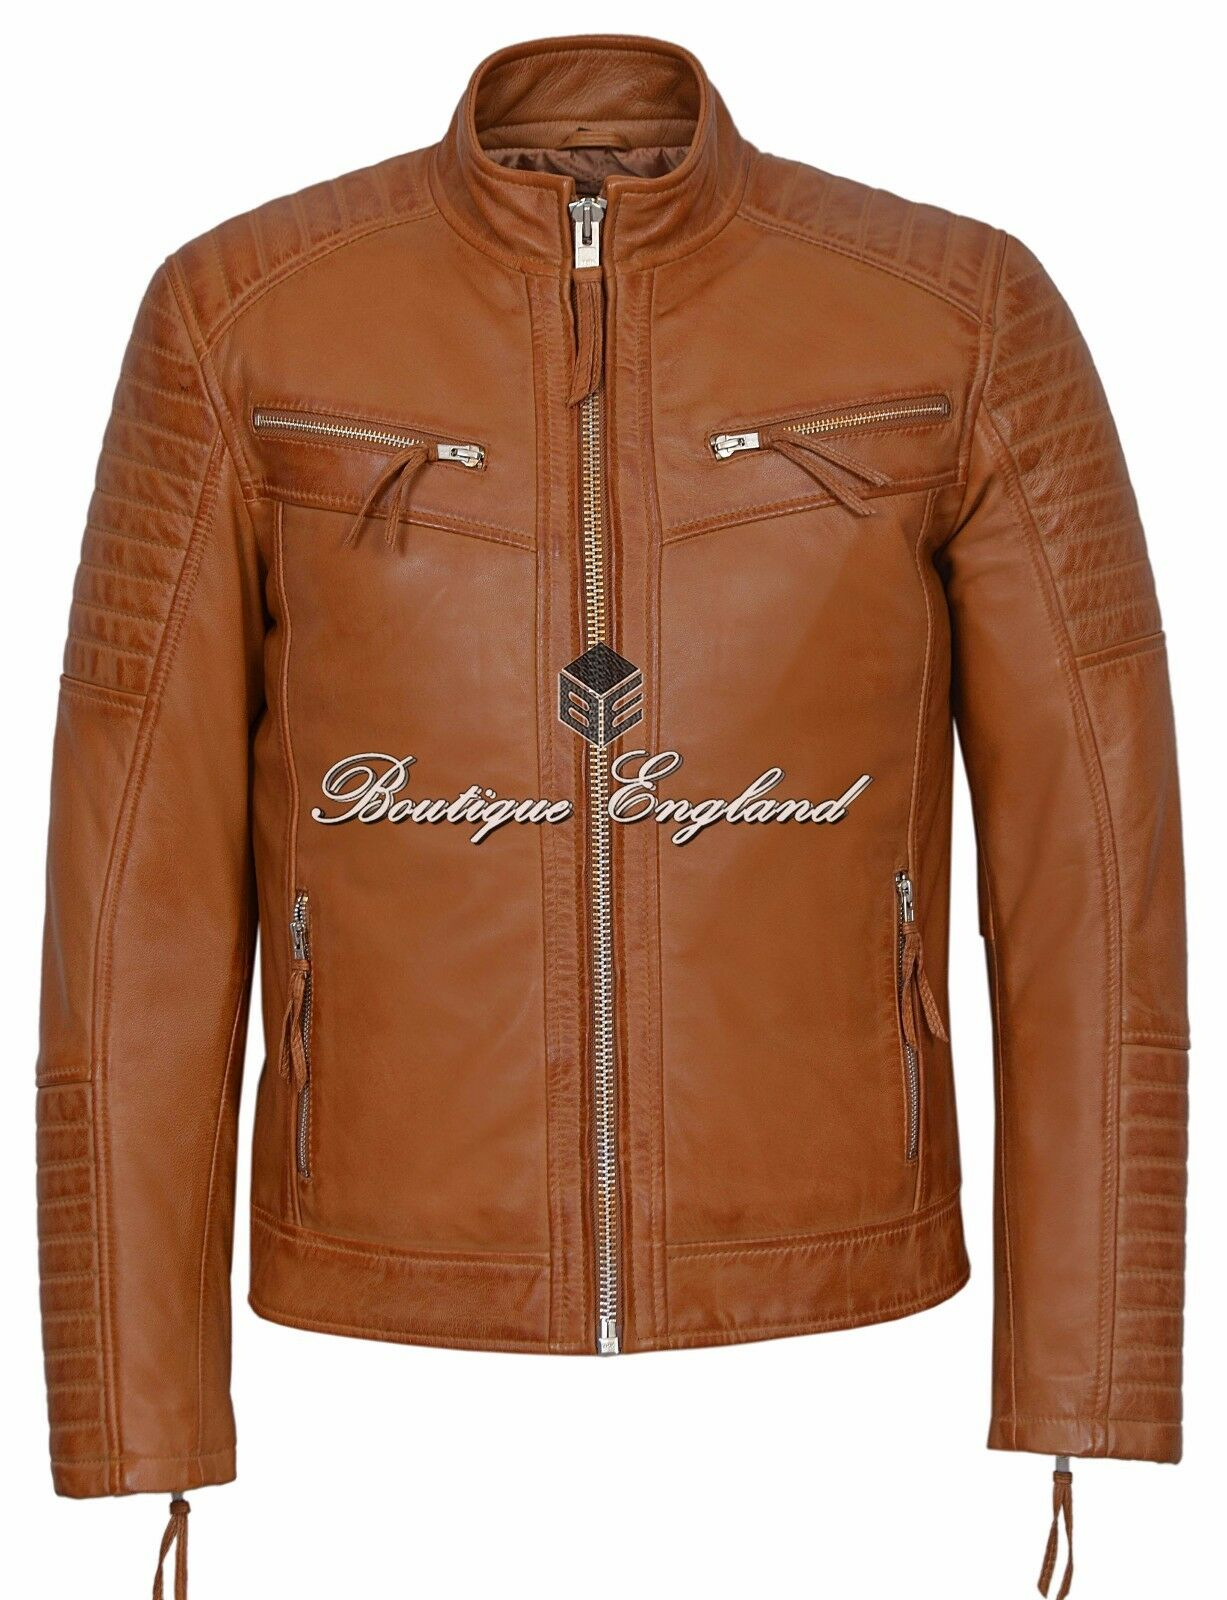 New Quilted jacke herren Tan Napa Biker Fashion Diamond Quilted REAL leder 2565